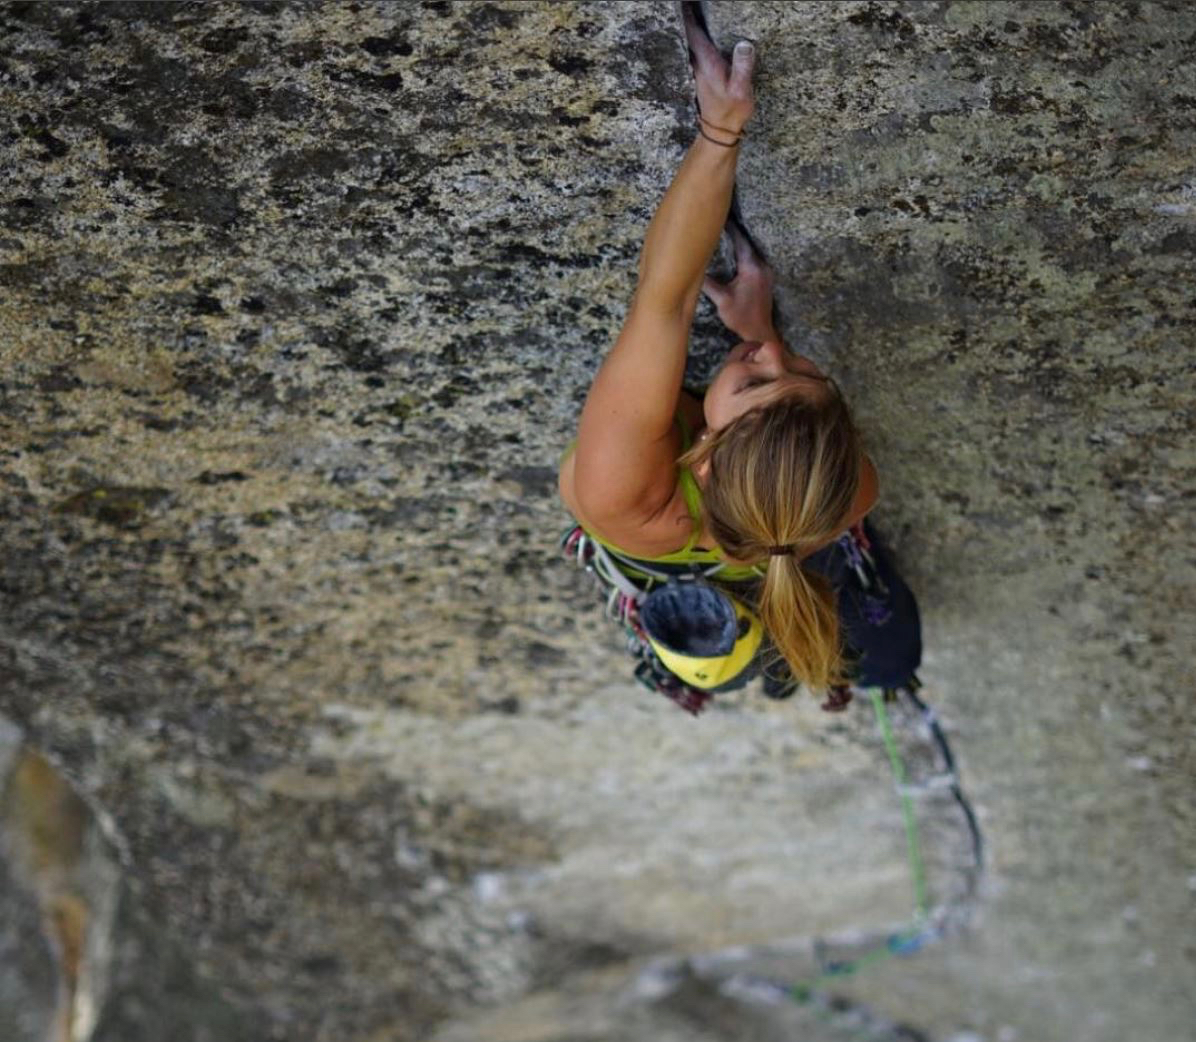 Hazel Findlay on the All Things Climbing podcast